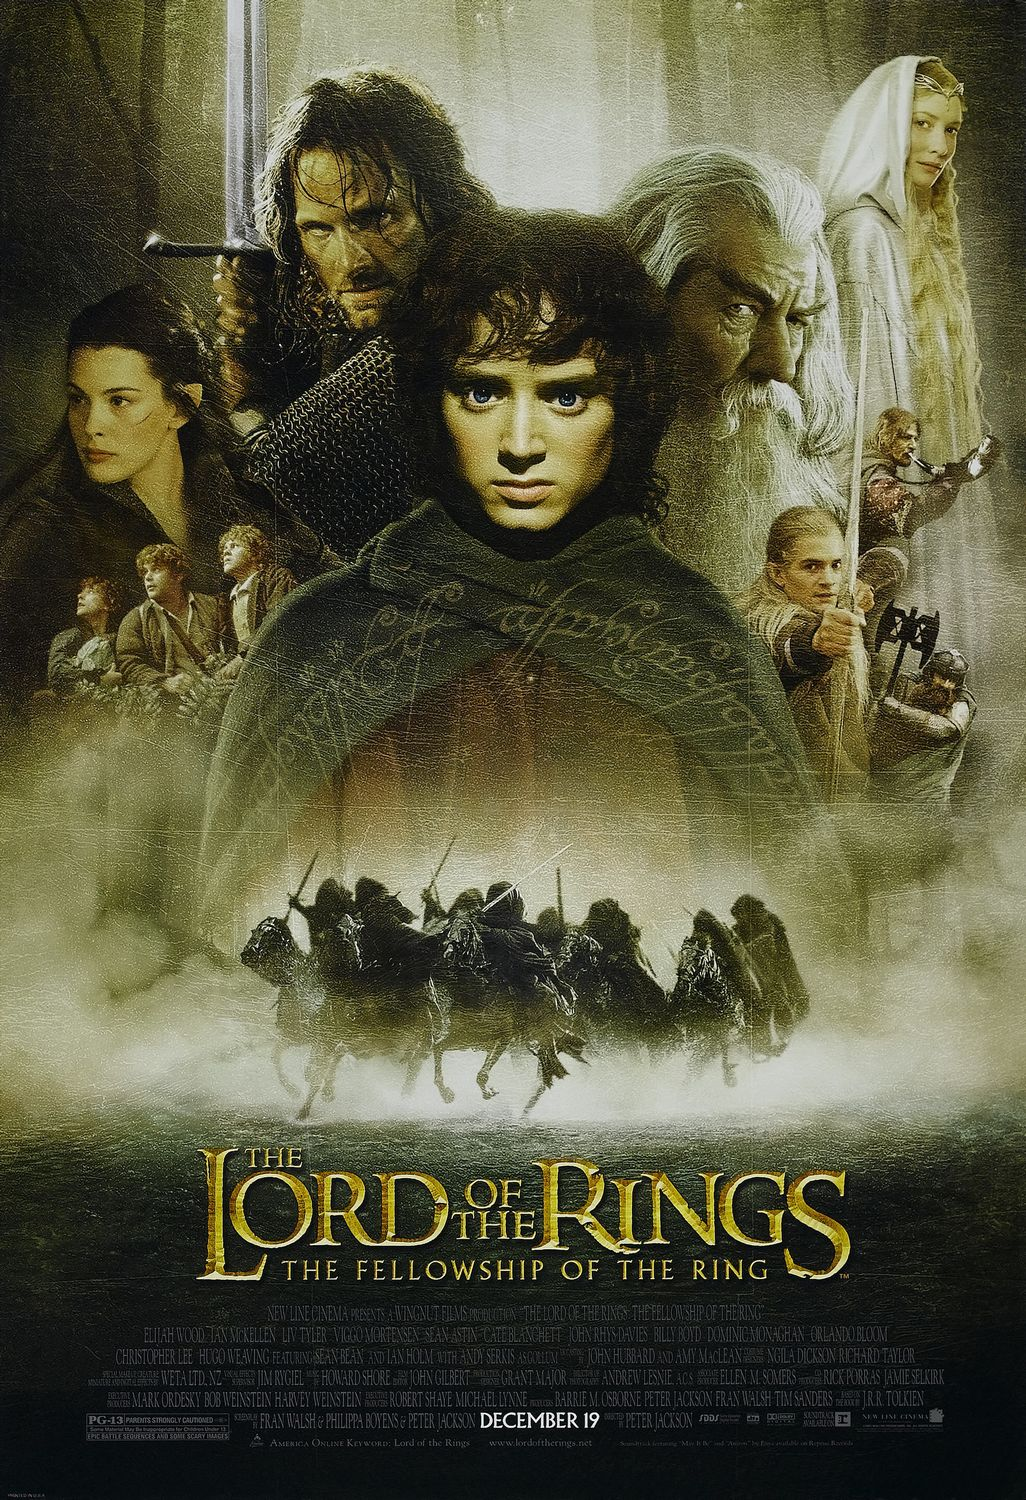 lord of the rings friendship Lord of the rings friendship quotes - 1 there is only one lord of the ring, only one who can bend it to his will and he does not share power -gandalf read more quotes and sayings about lord of the rings friendship.